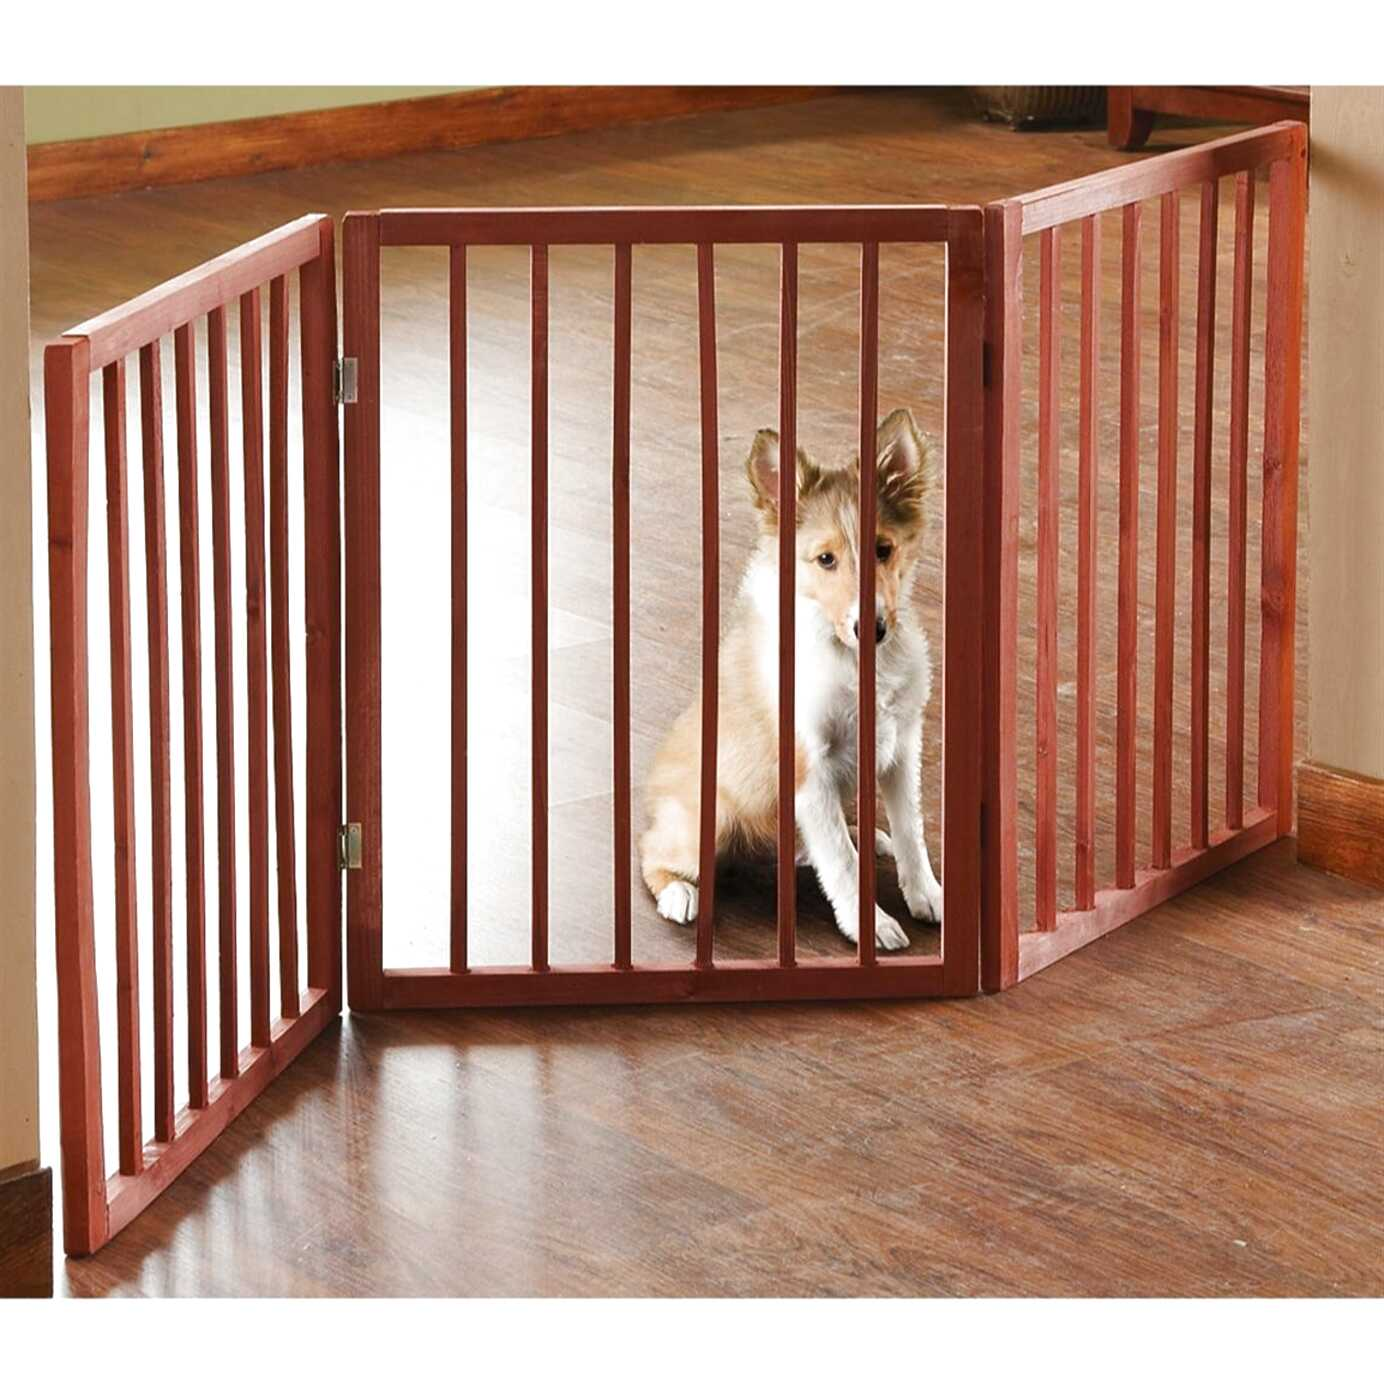 Folding Safety Pet Gate Indoor Wooden Dog Fence Barrier Small 3 Part Portable Uk